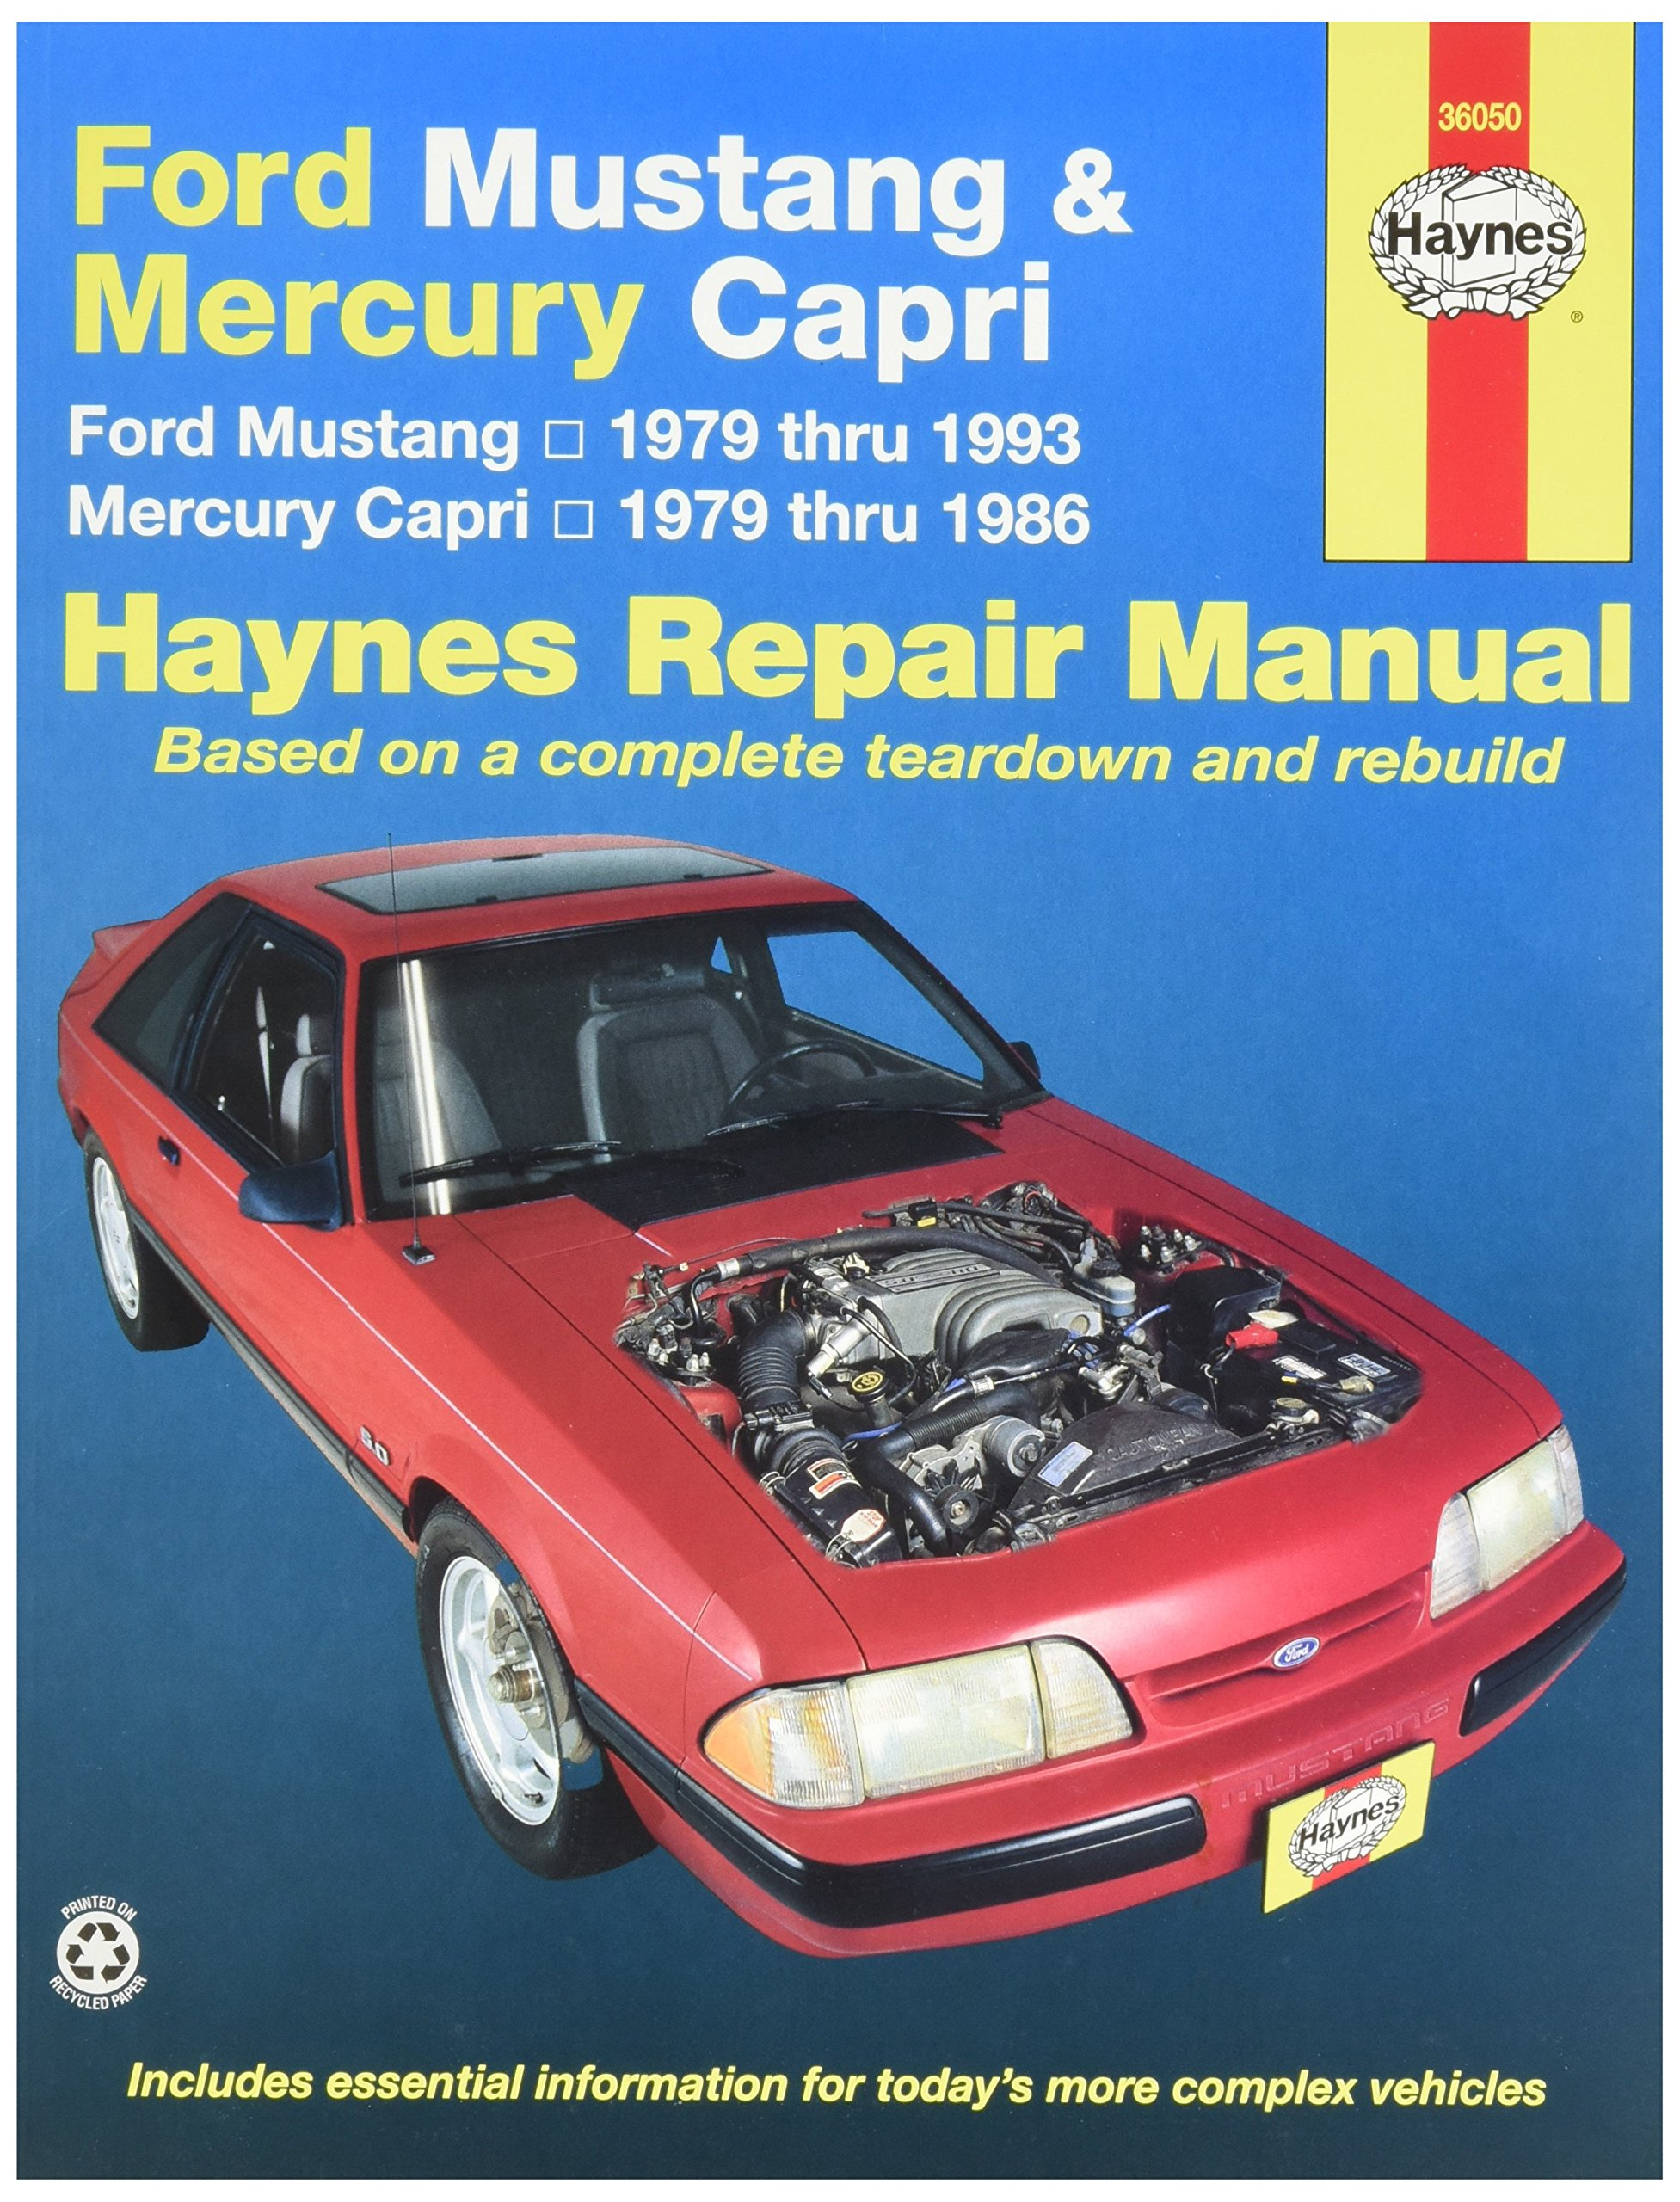 Haynes Ford Mustang 79-93, Mercury Capri 79 - 86: 0038345006548:  Amazon.com: Books